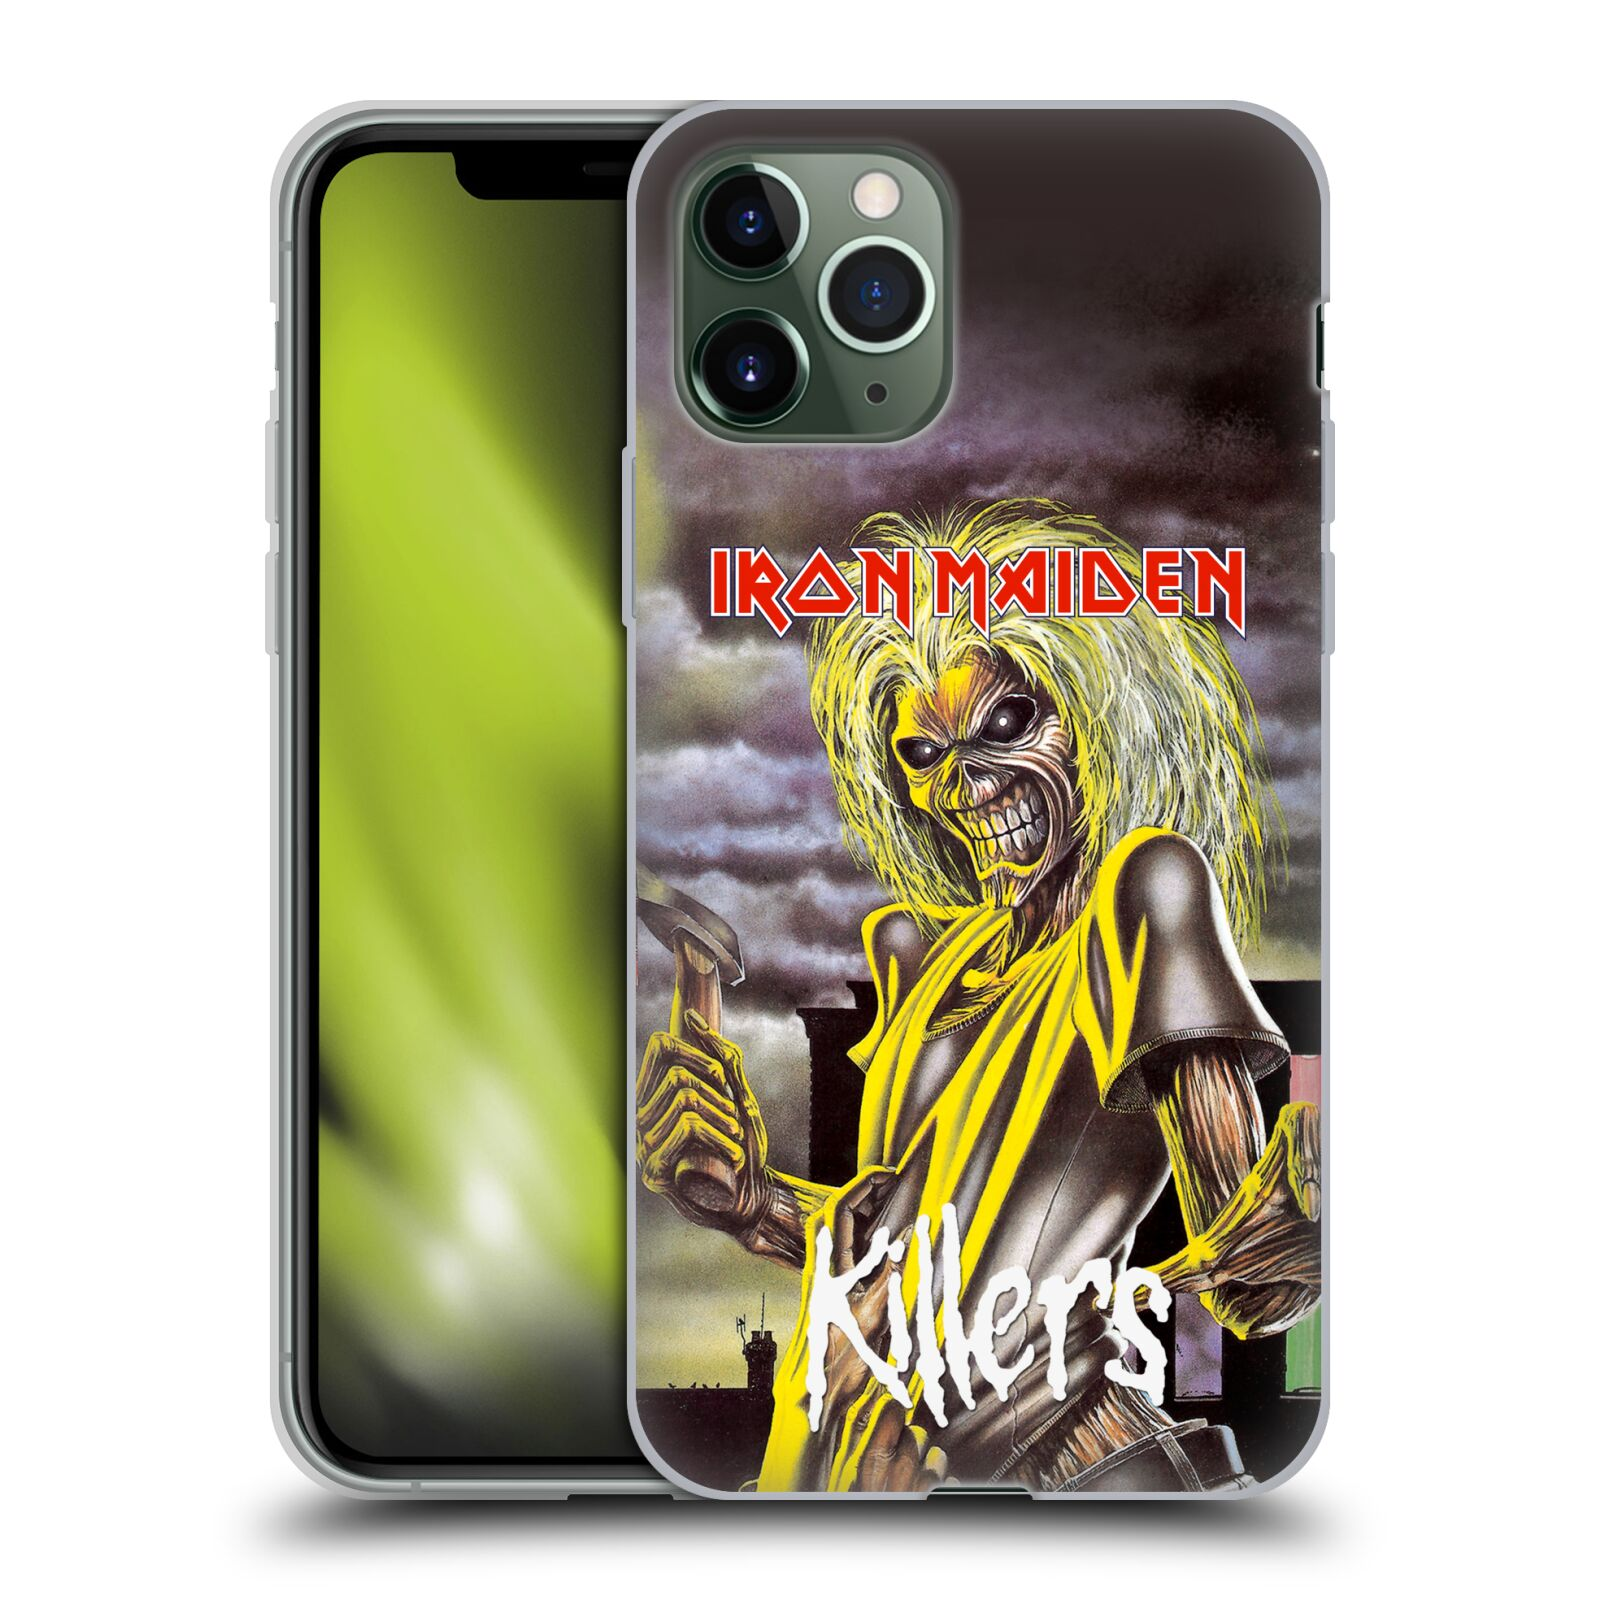 original krytu na iphone xr | Silikonové pouzdro na mobil Apple iPhone 11 Pro - Head Case - Iron Maiden - Killers